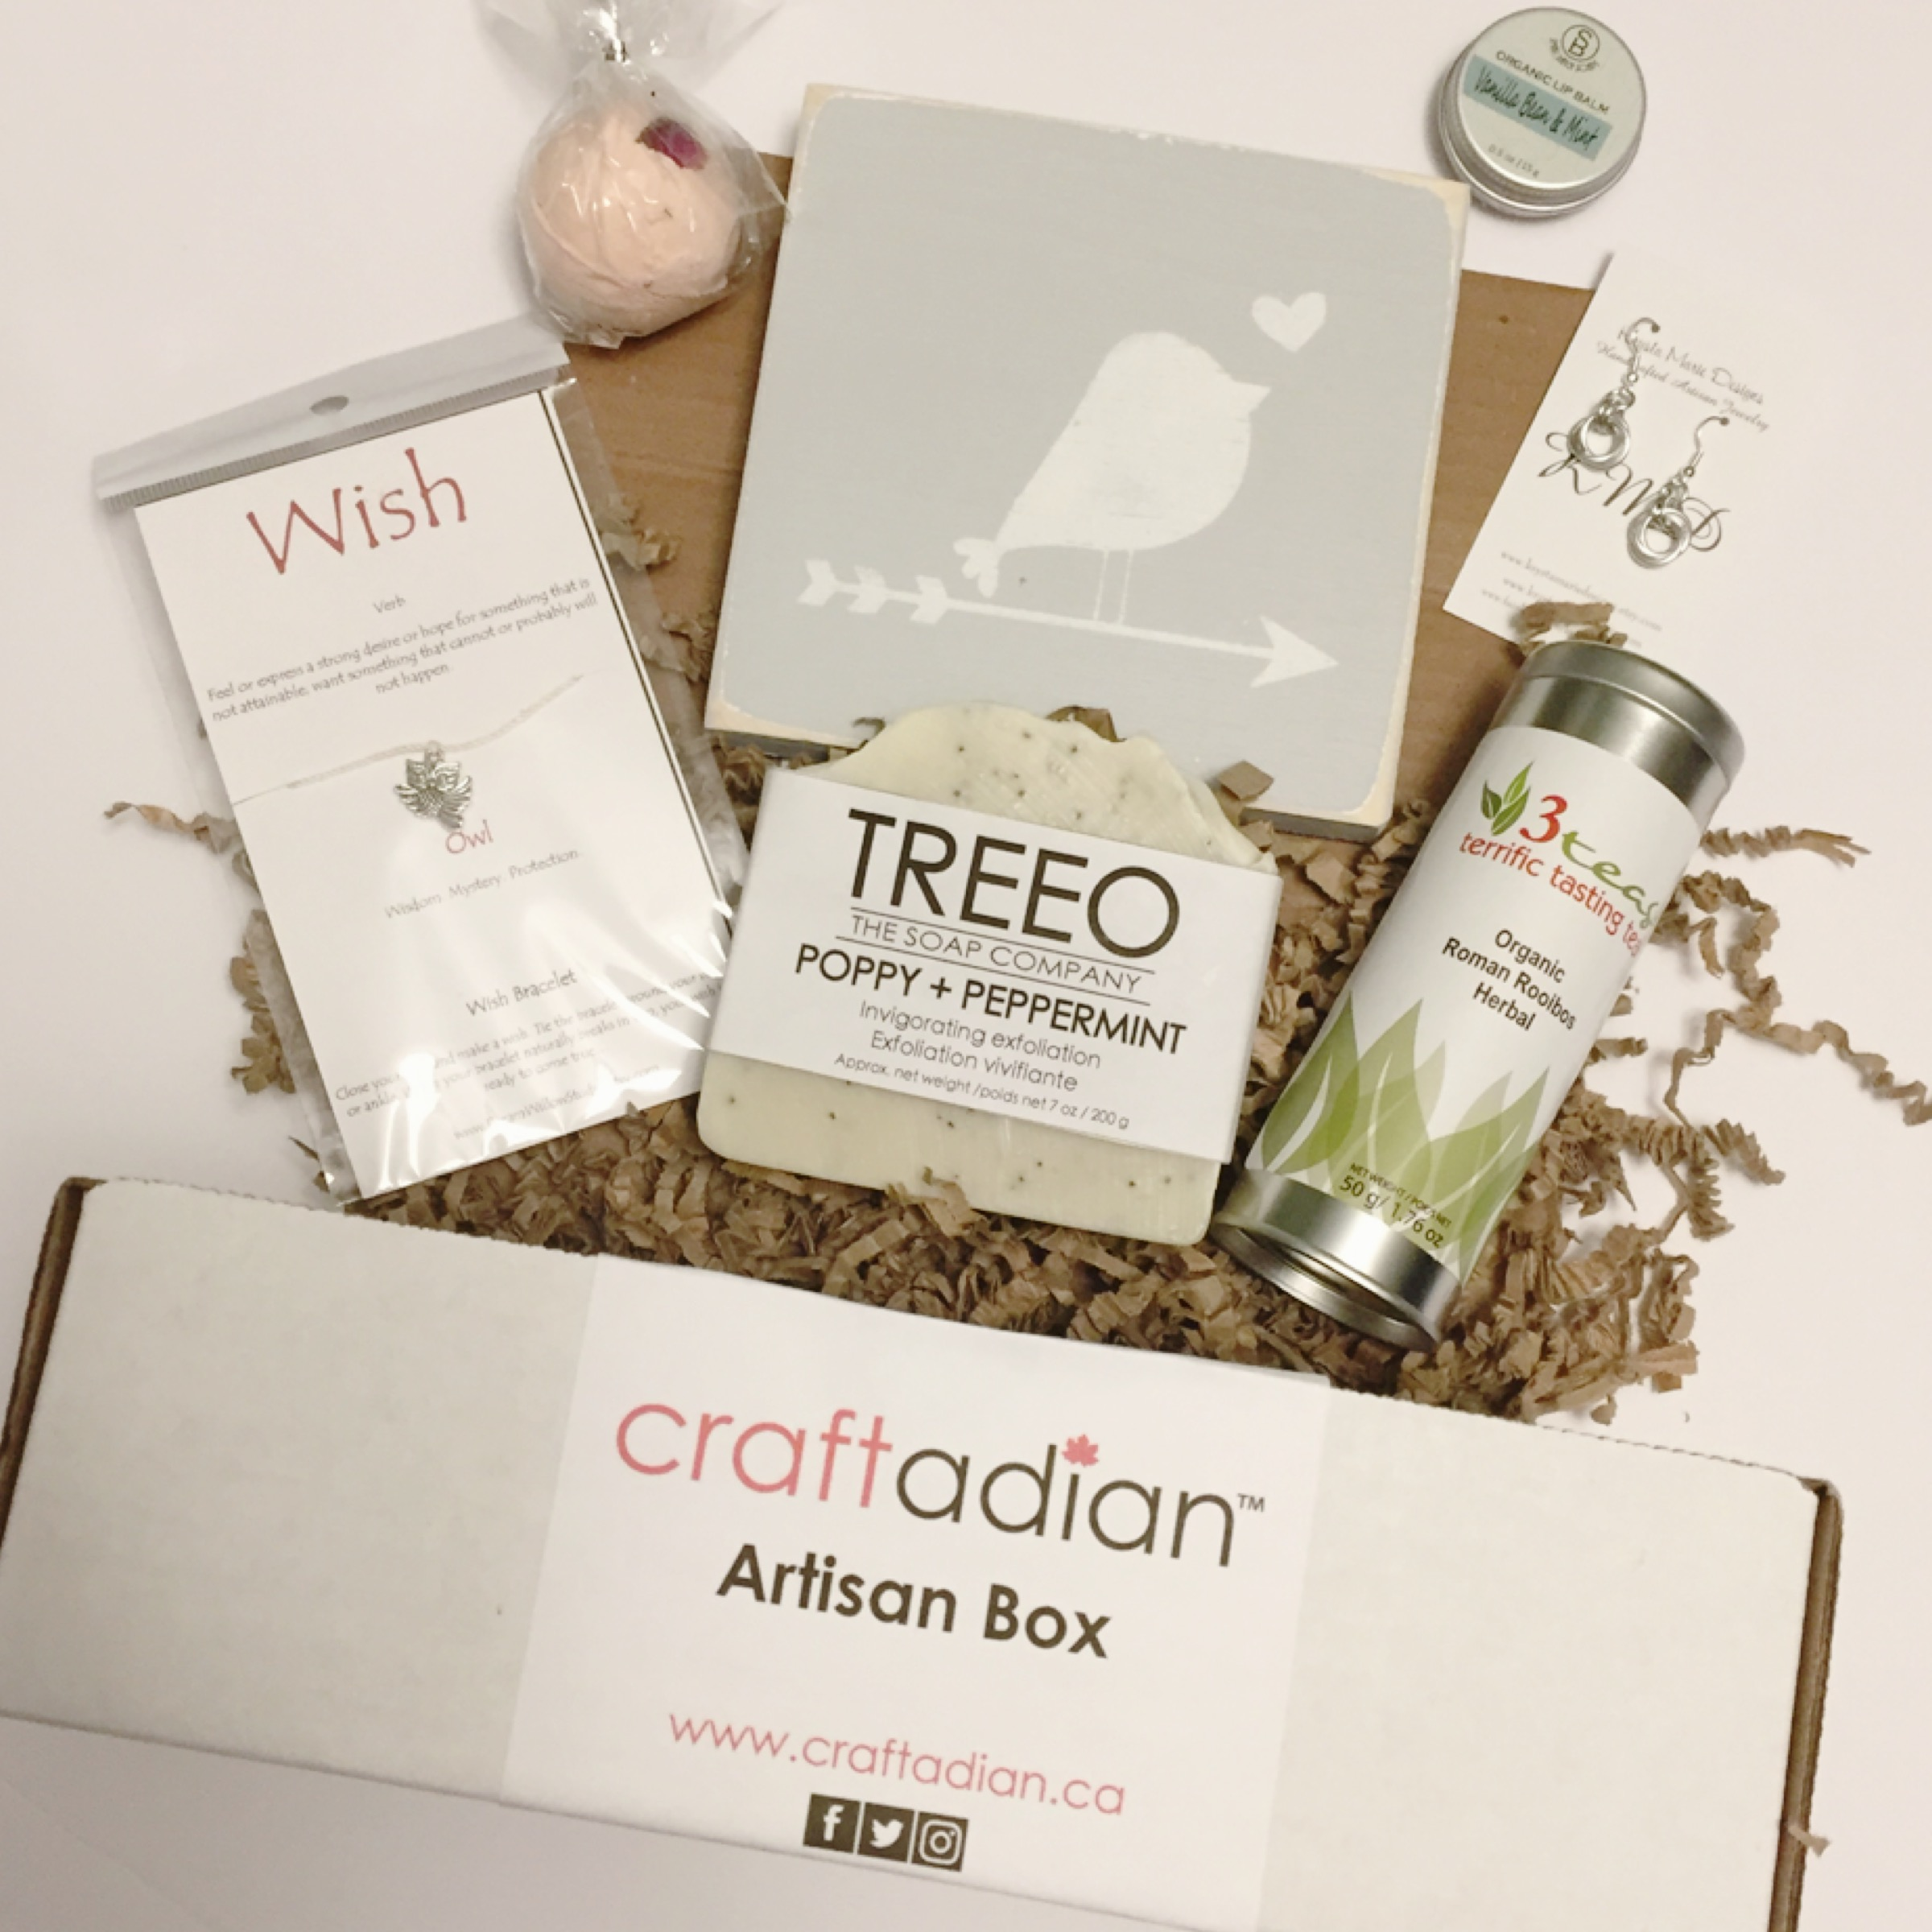 Craftadian craftadian artisan gift box one time for Home subscription box